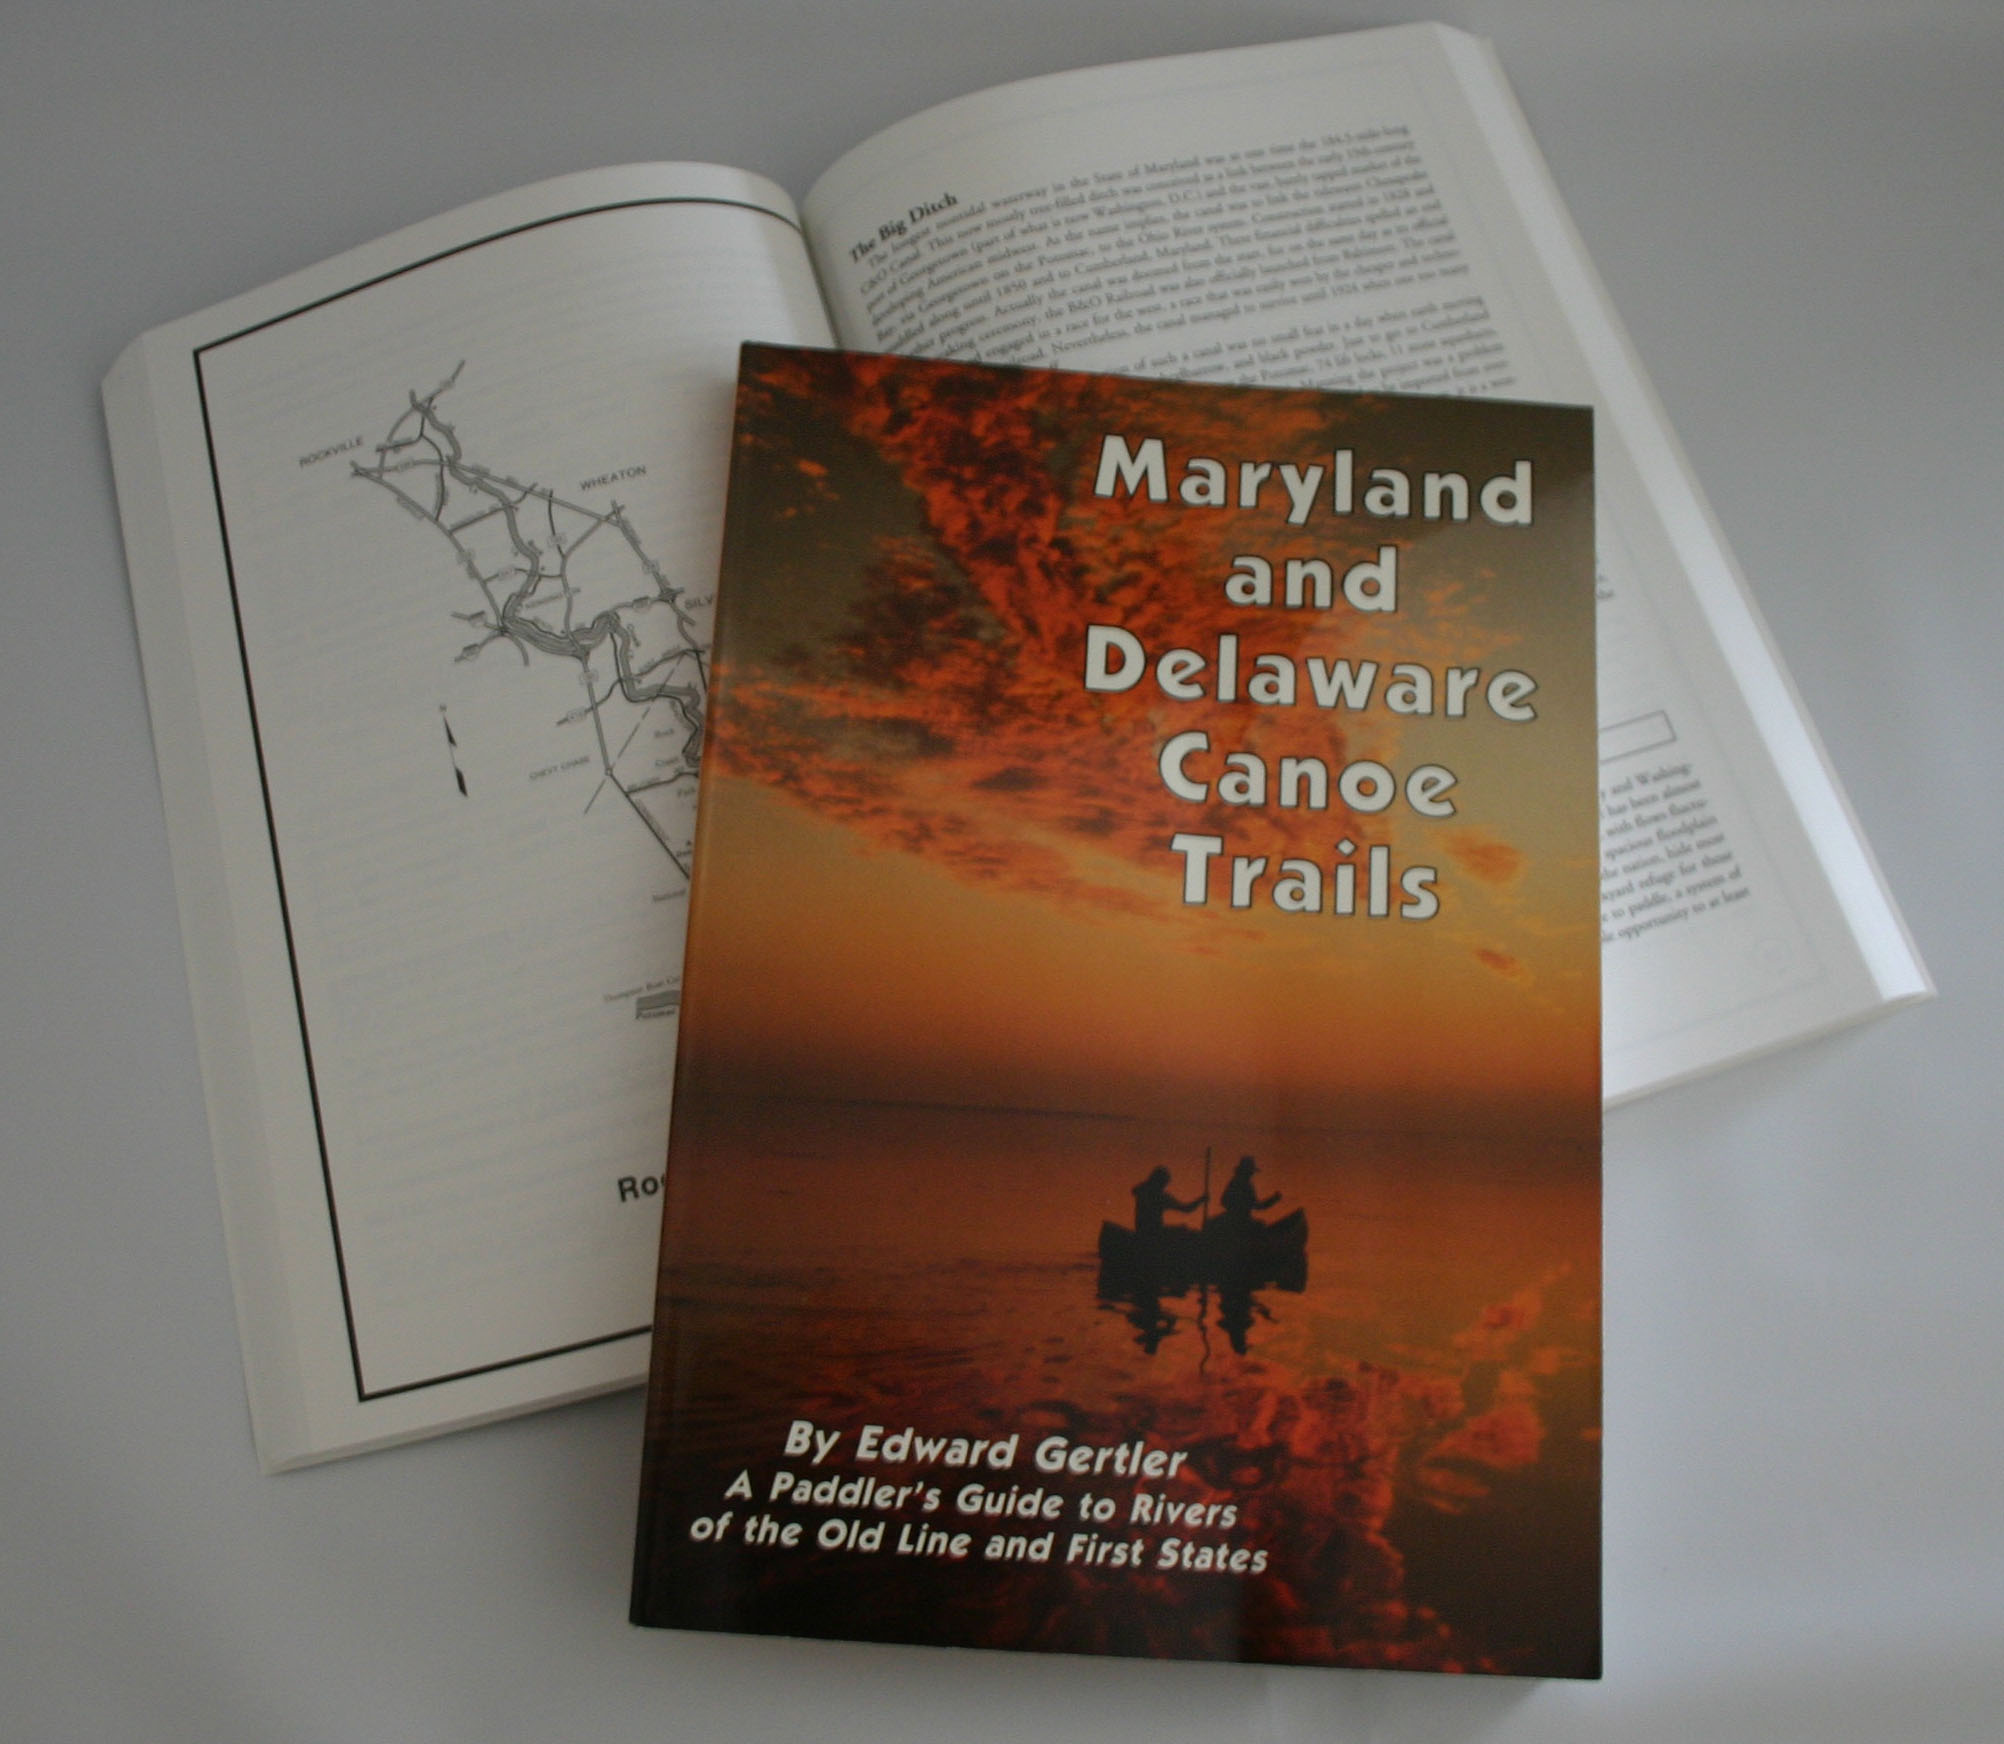 Maryland and Delaware Canoe Trails, by Edward Gertler